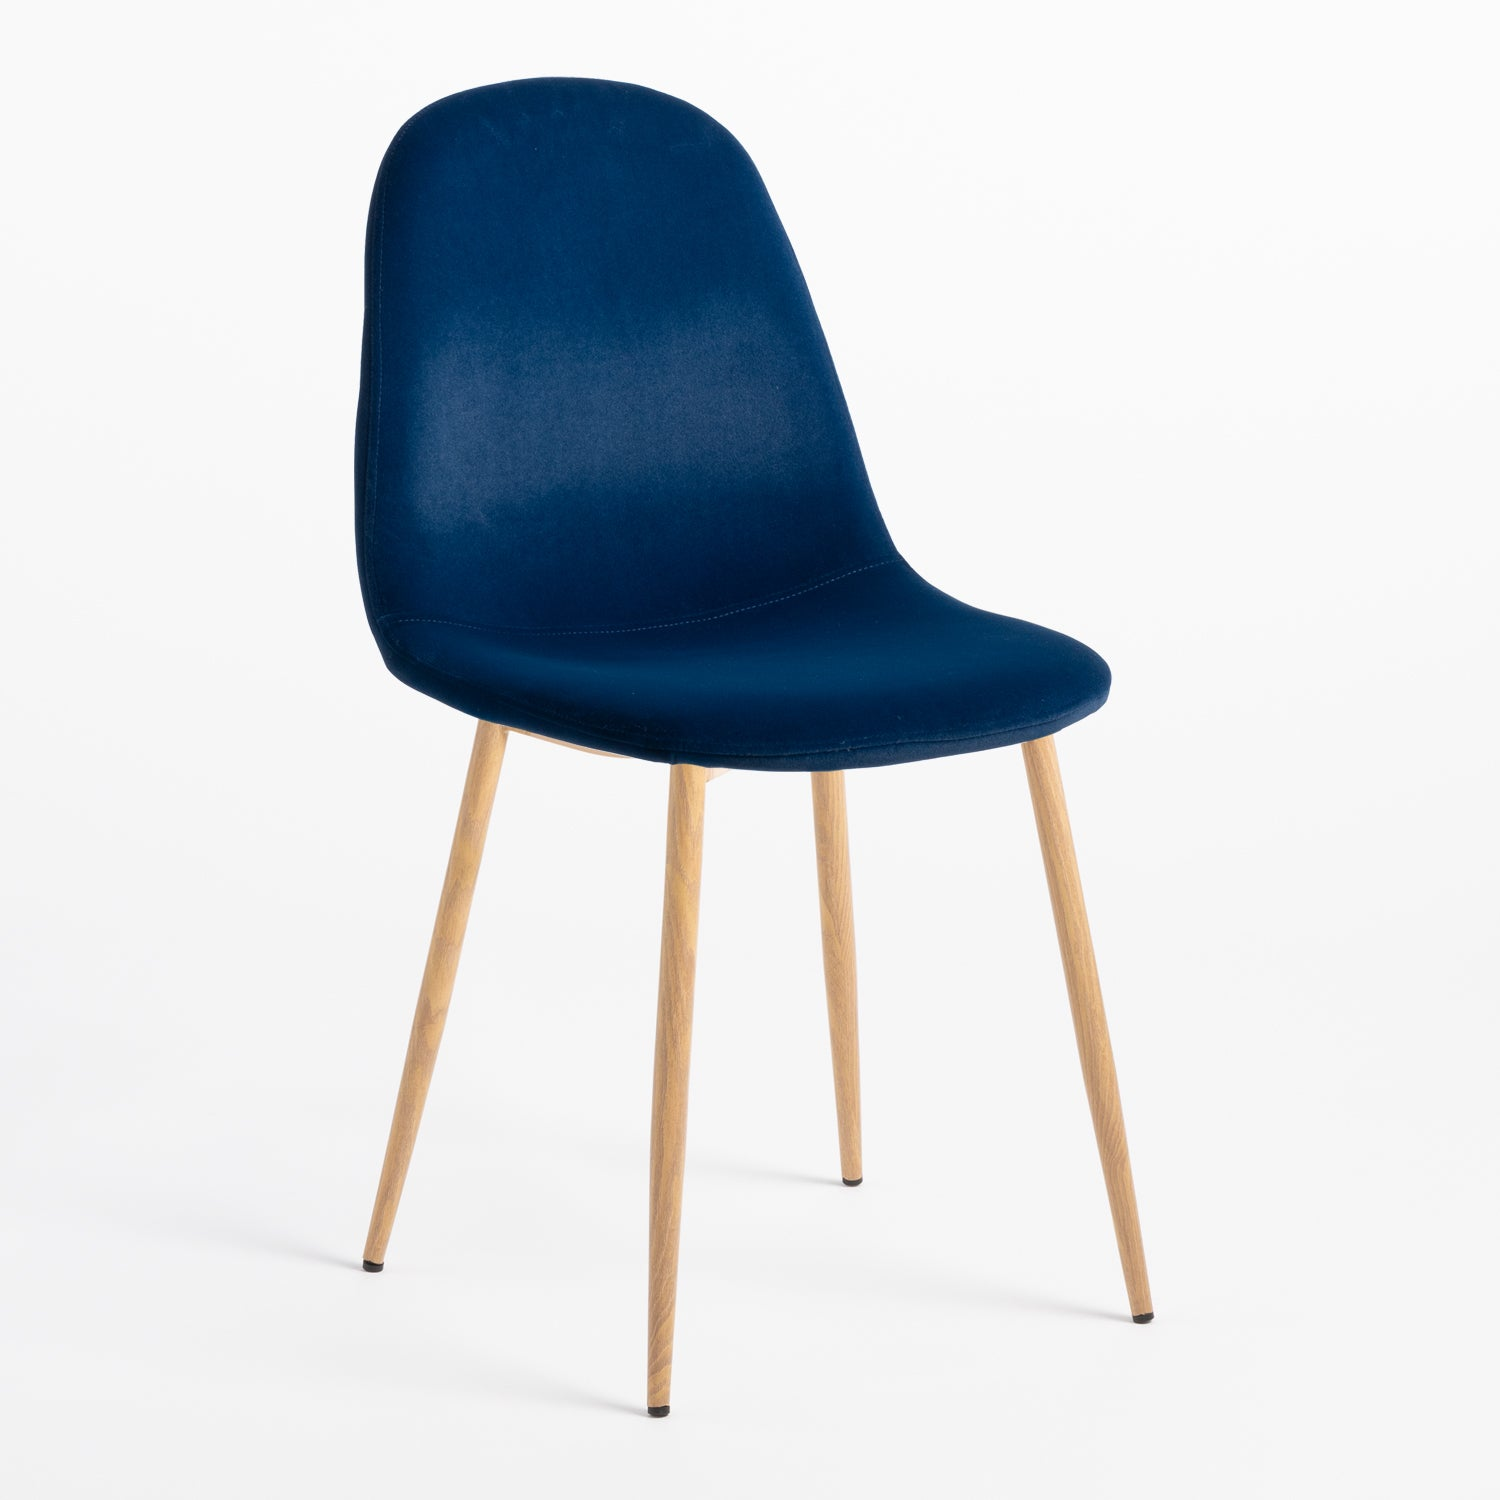 Shades of Blue Alfie Curve Scandi Dining Chair Rose Gold.Black.Chrome.Metal.Wood Leg